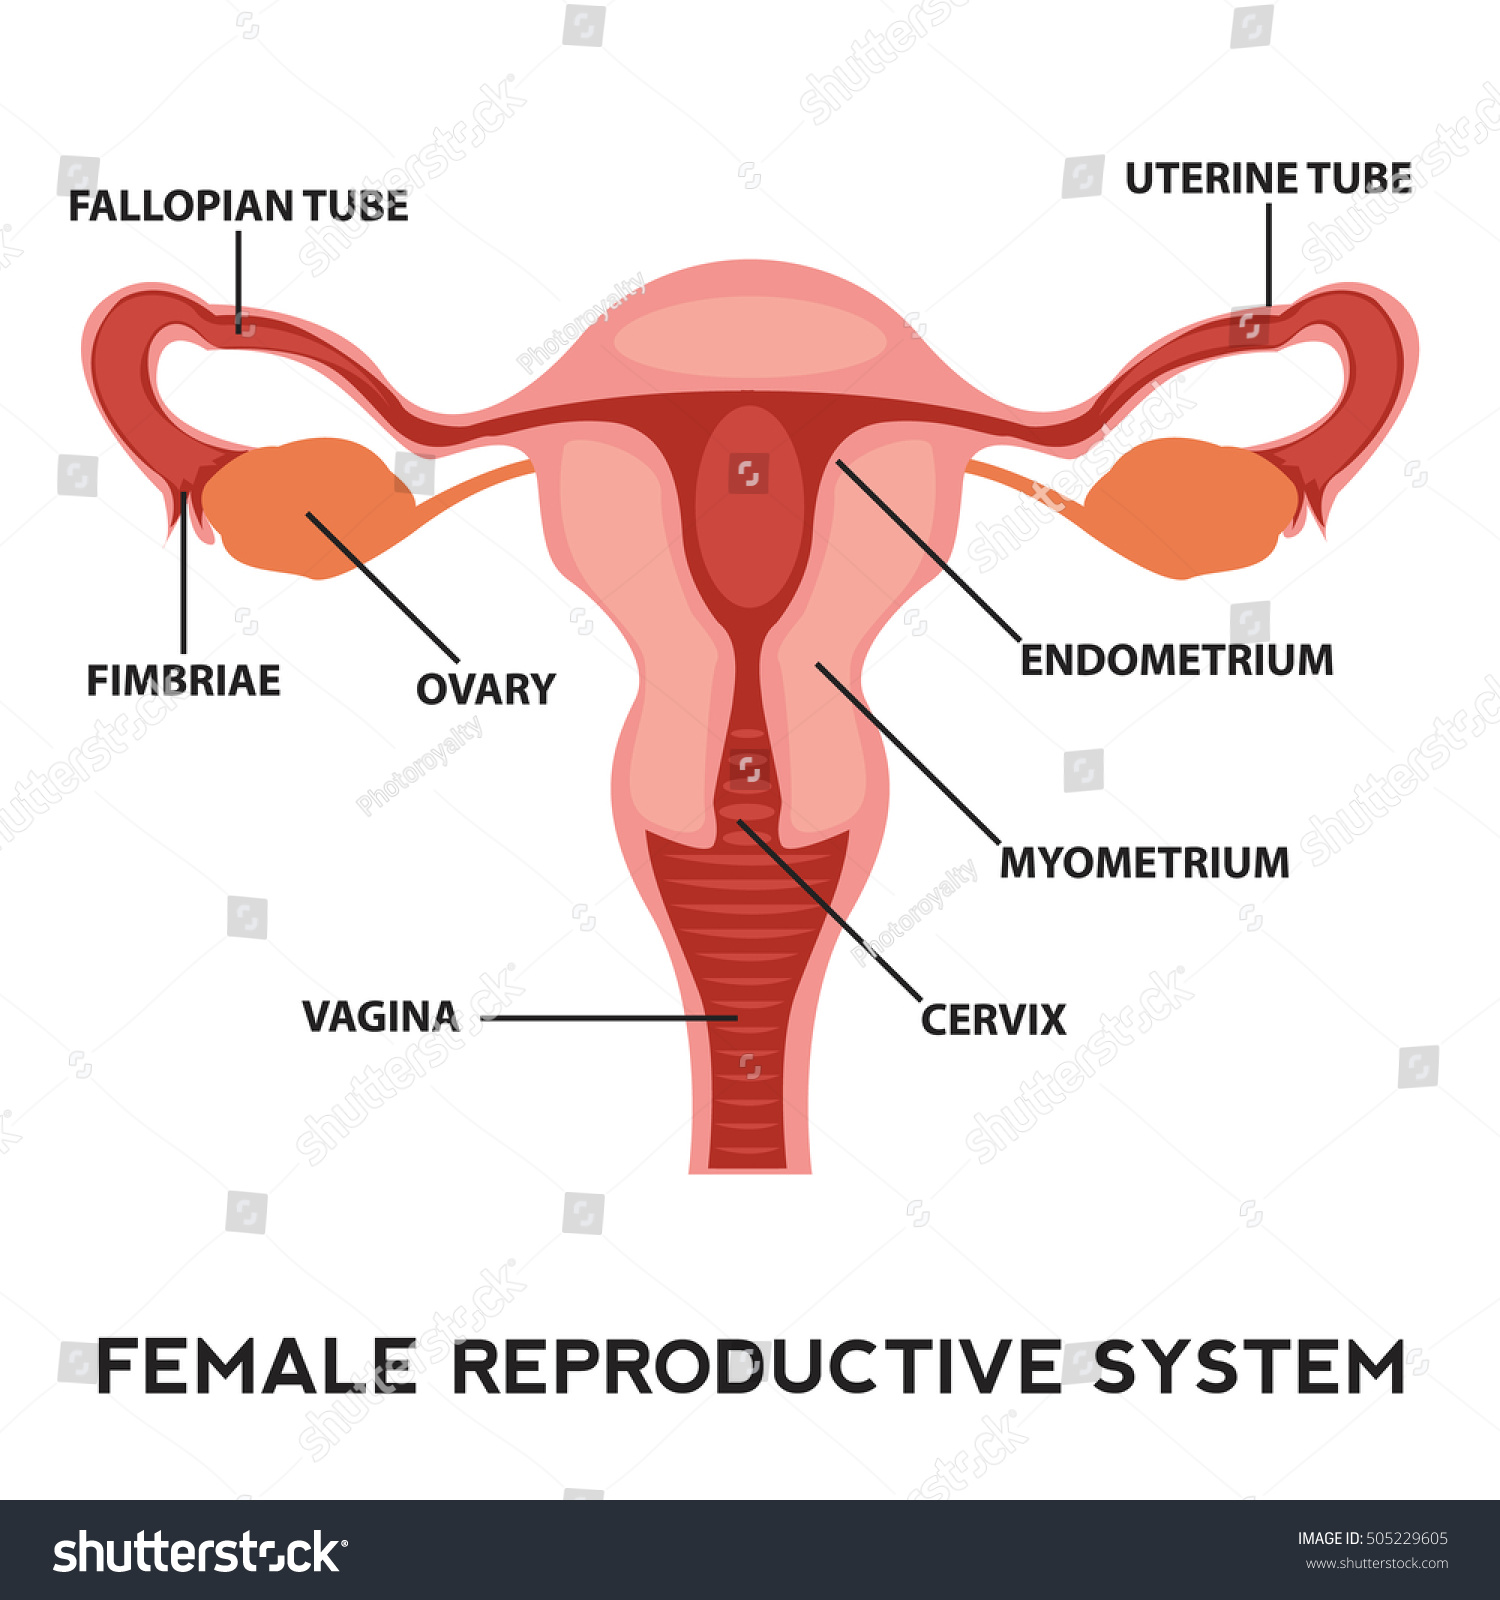 hight resolution of female reproductive system image diagram vagina medical human anatomy